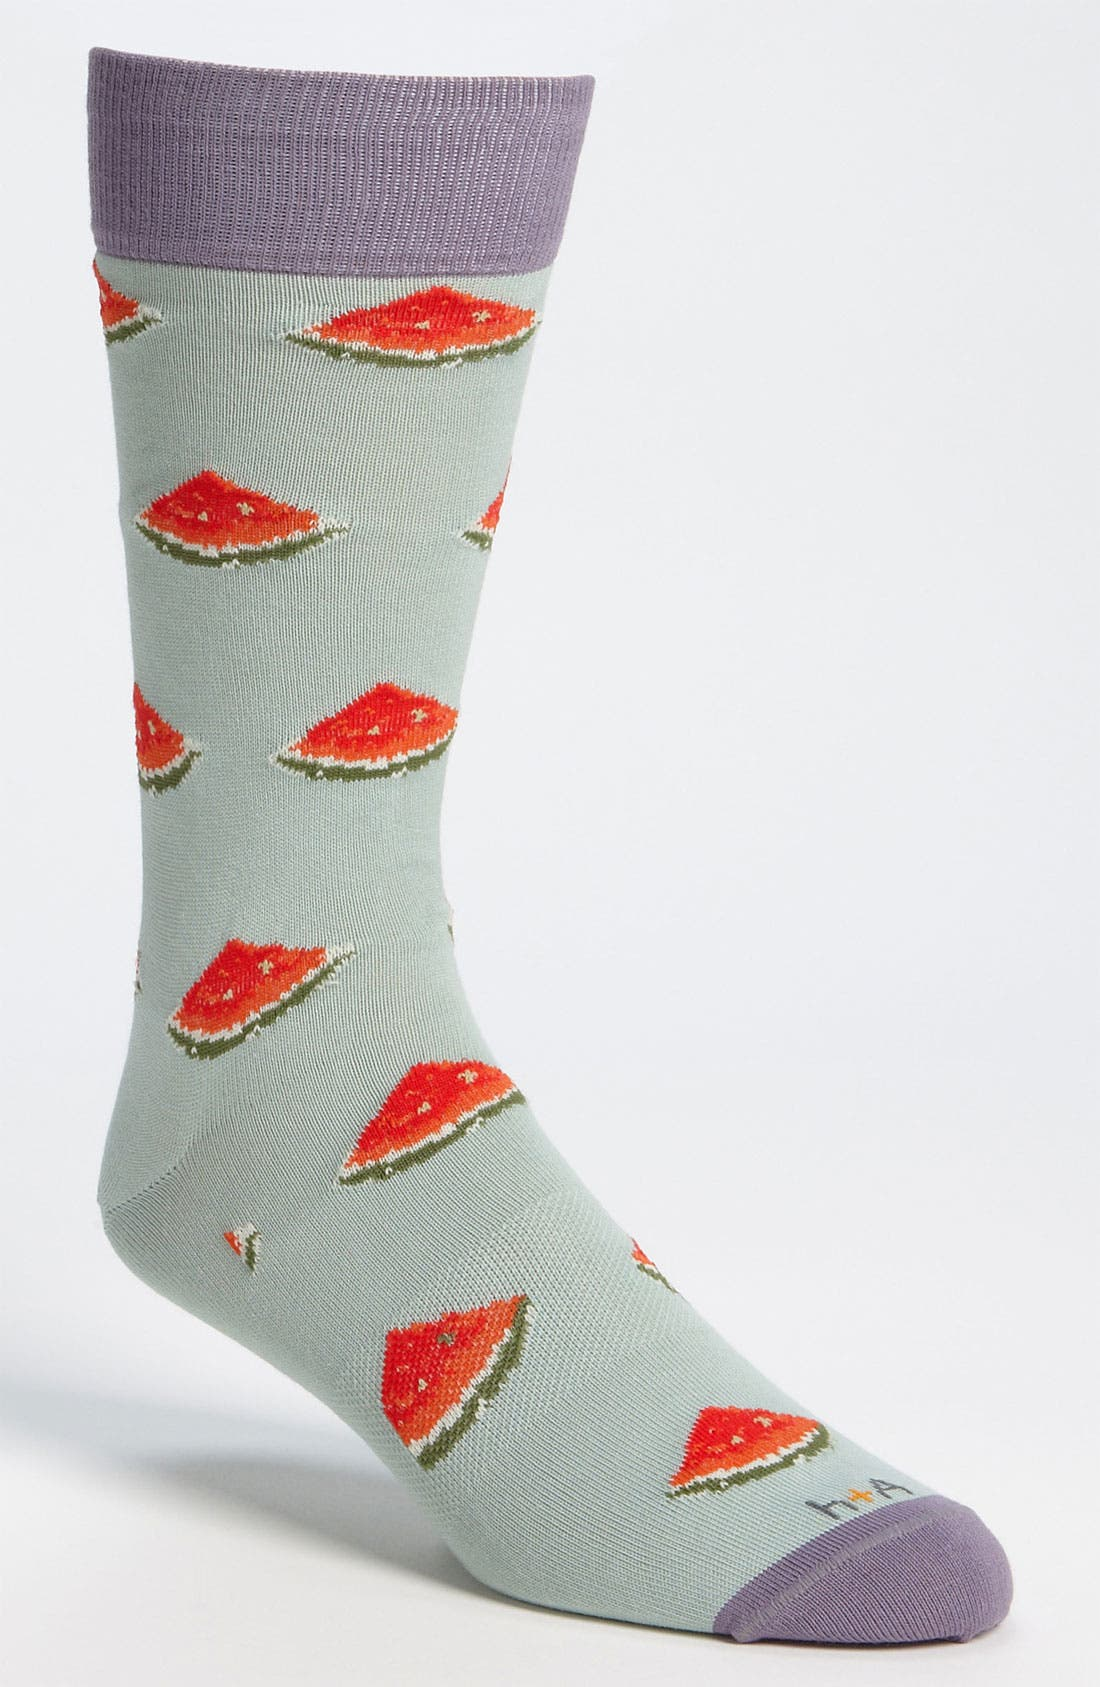 Alternate Image 1 Selected - hook + ALBERT Watermelon Socks (Online Exclusive)